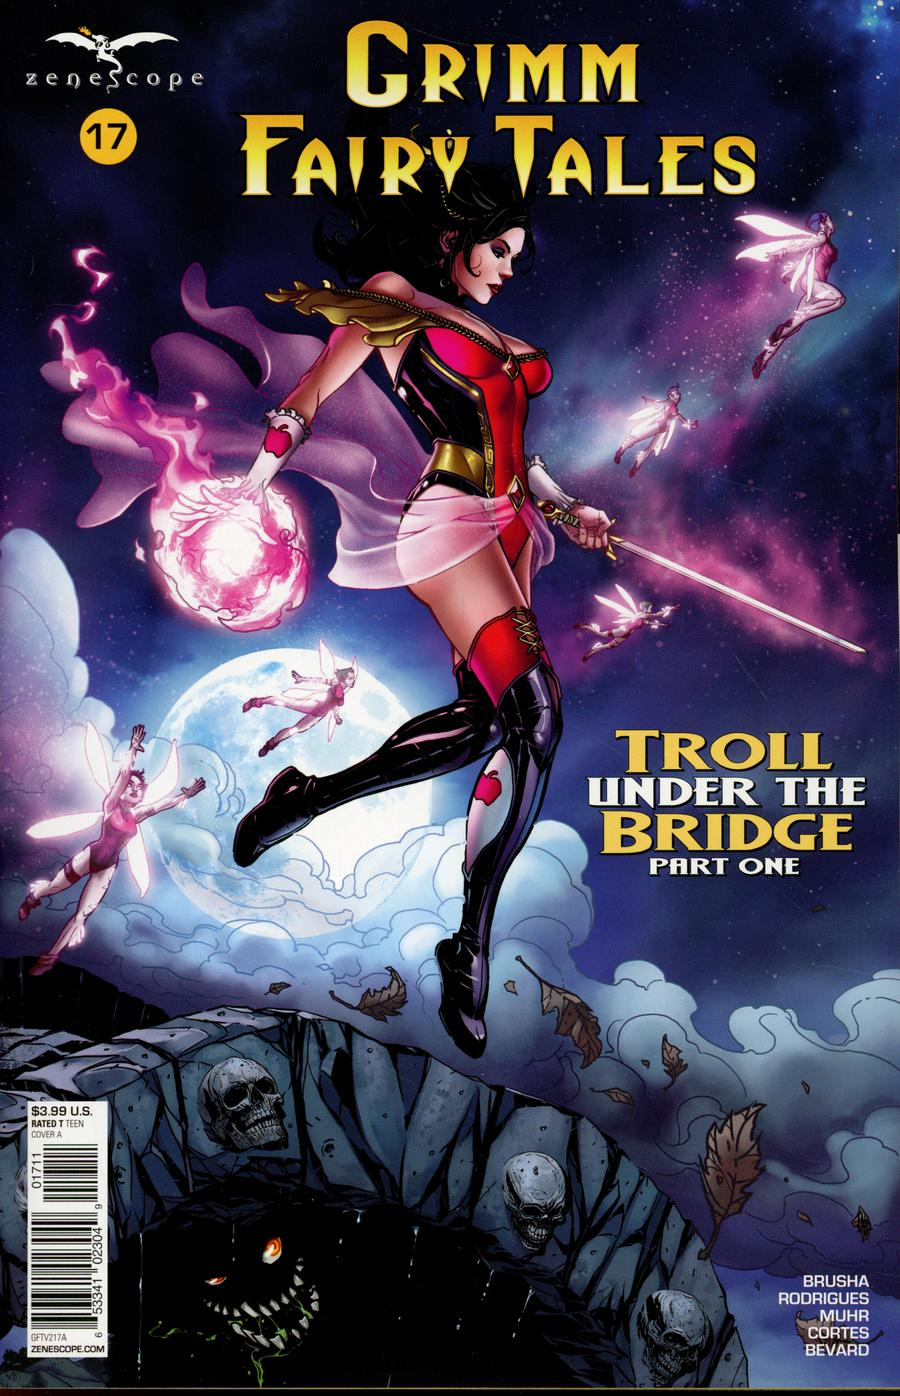 Grimm Fairy Tales Vol 2 #17 Cover A Drew Edward Johnson